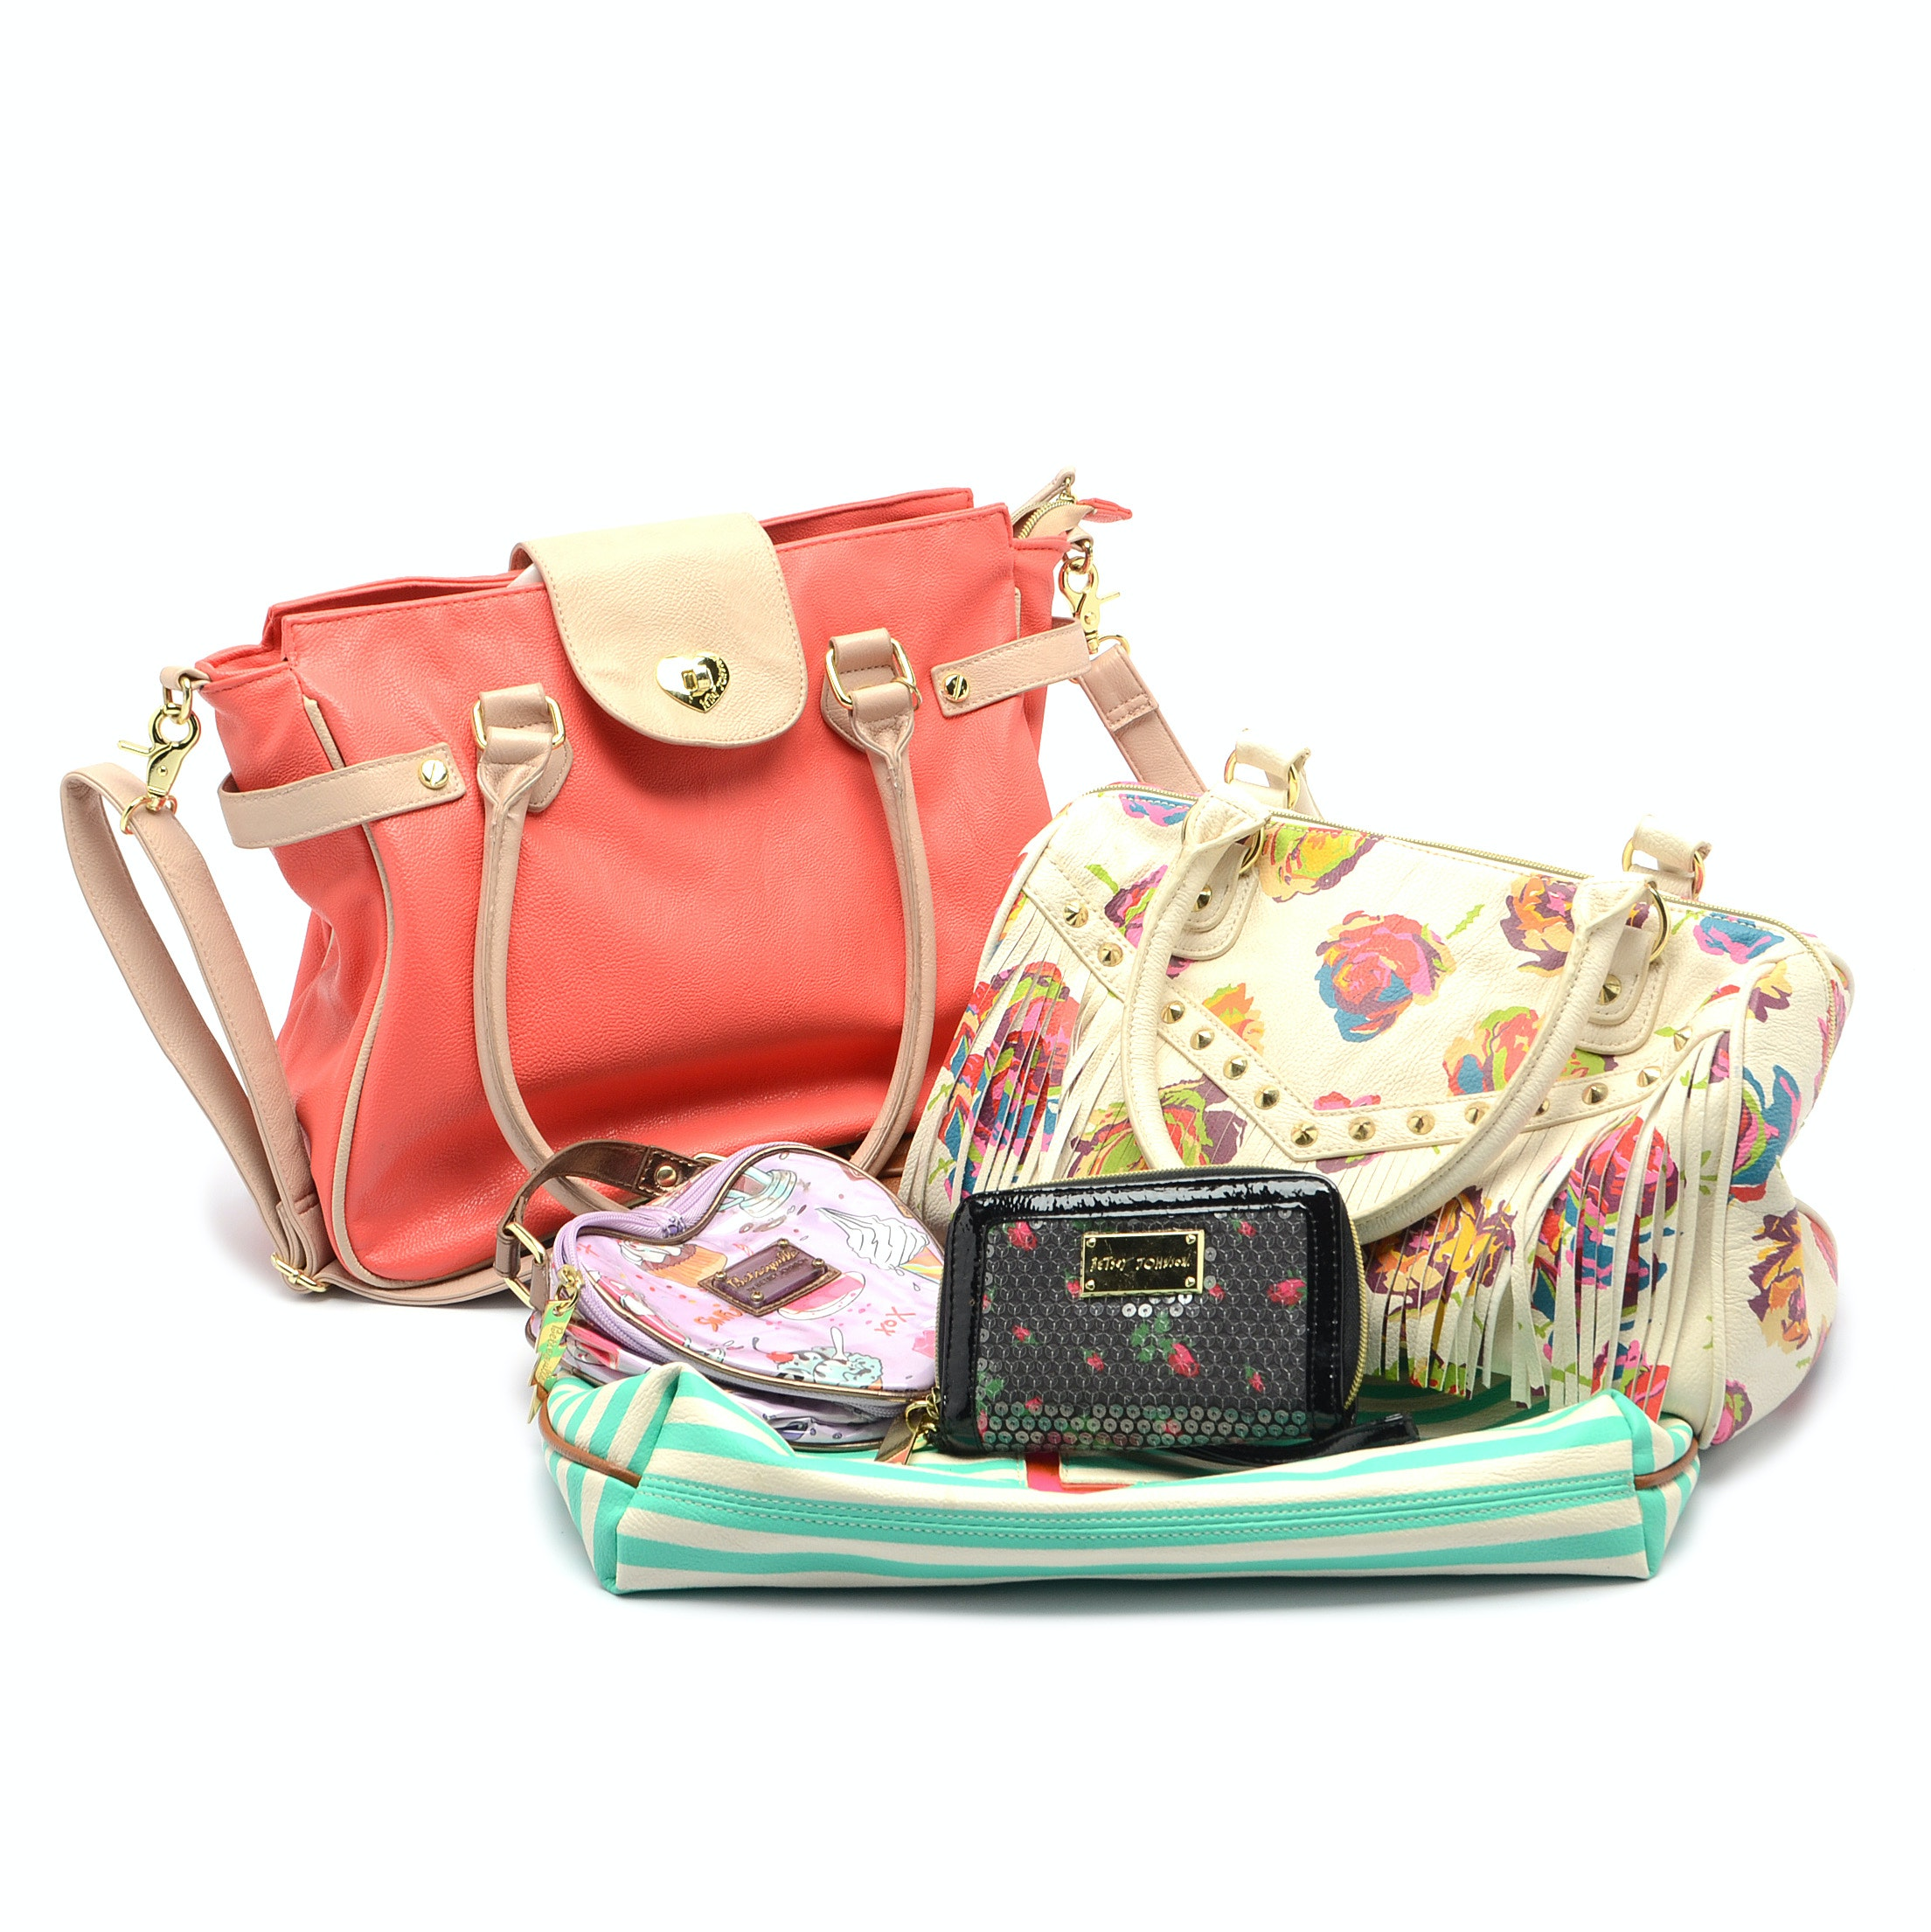 Collection of Betsey Johnson Handbags and Wallets